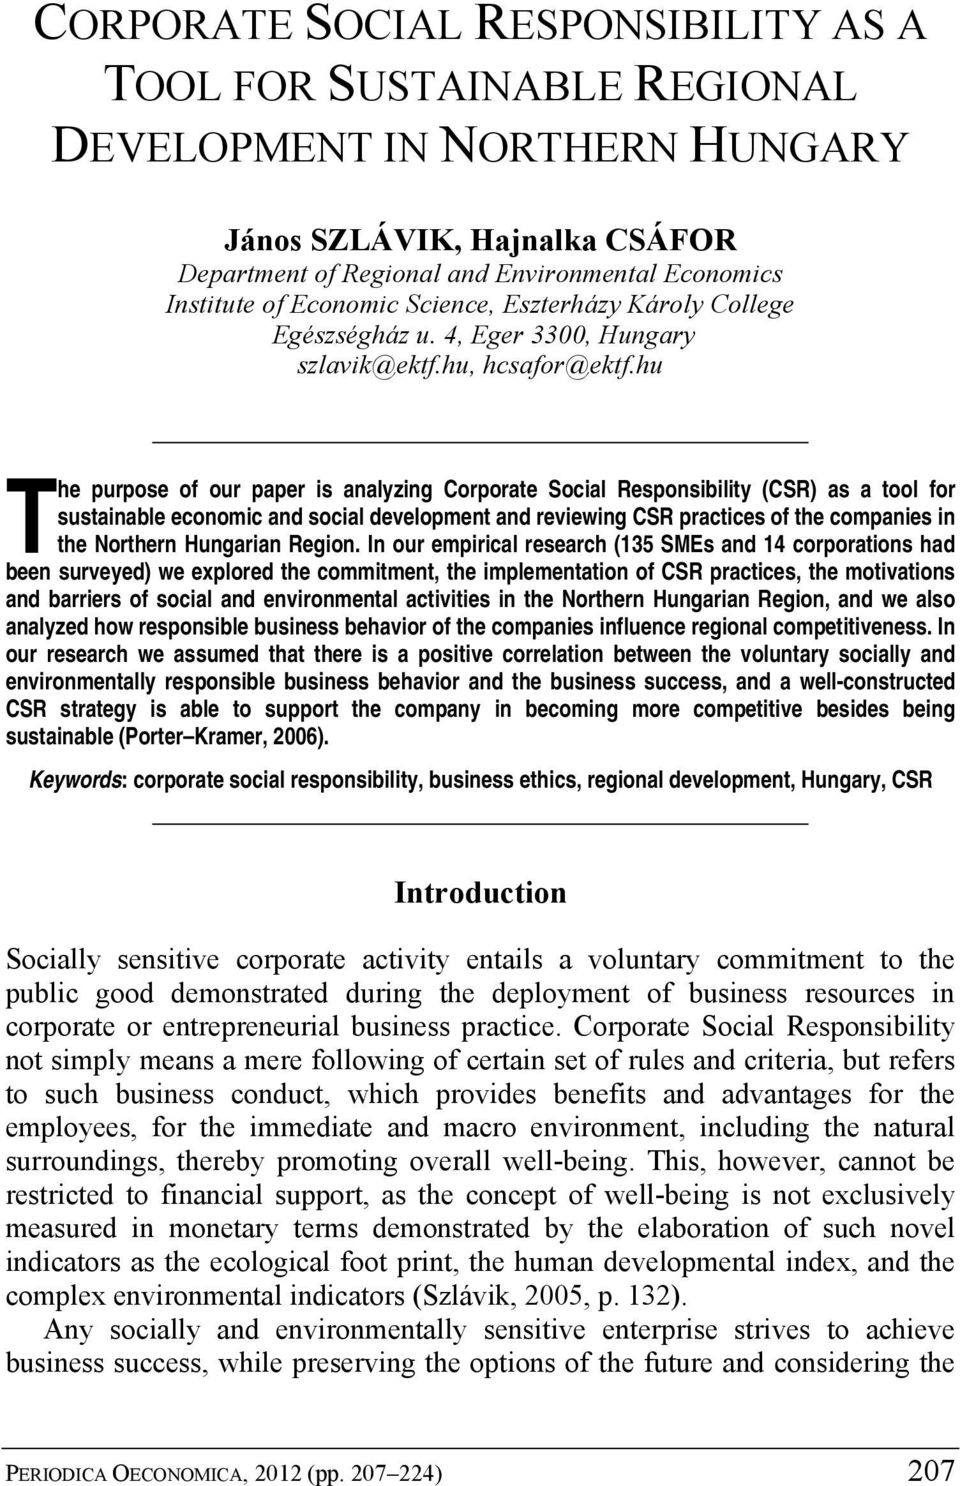 hu The purpose of our paper is analyzing Corporate Social Responsibility (CSR) as a tool for sustainable economic and social development and reviewing CSR practices of the companies in the Northern